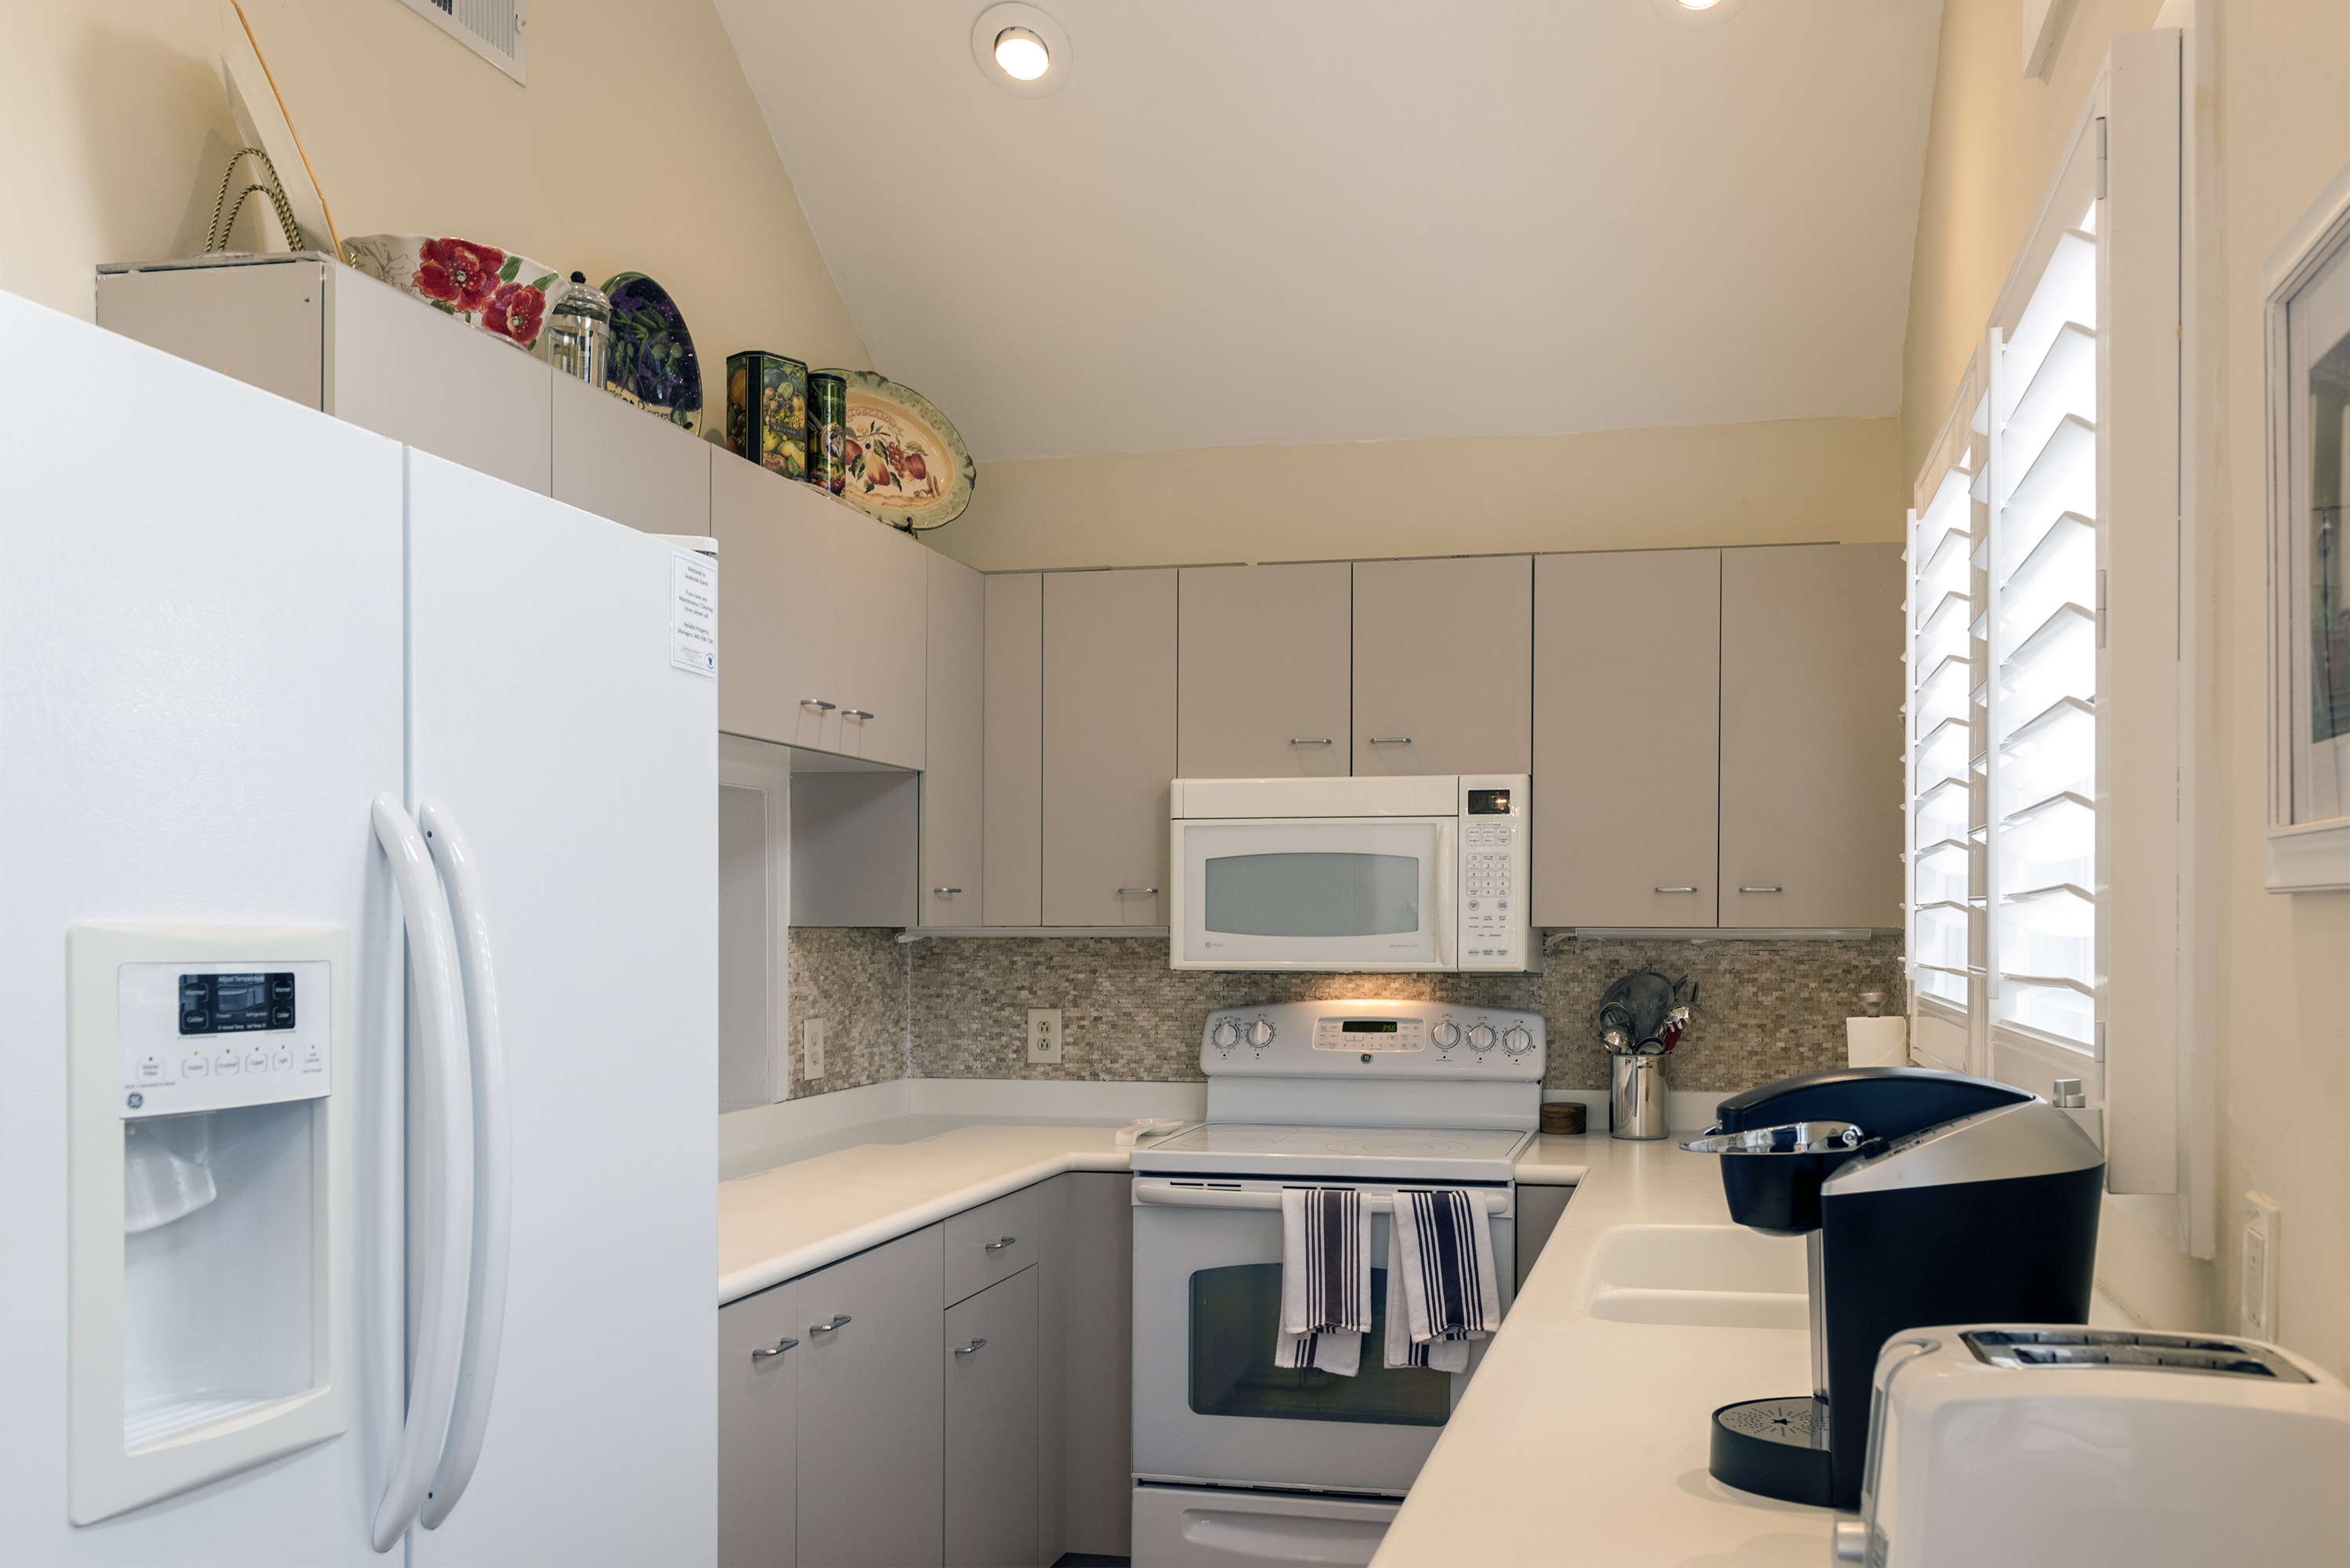 The galley kitchen is well equipped and has Corian counters.